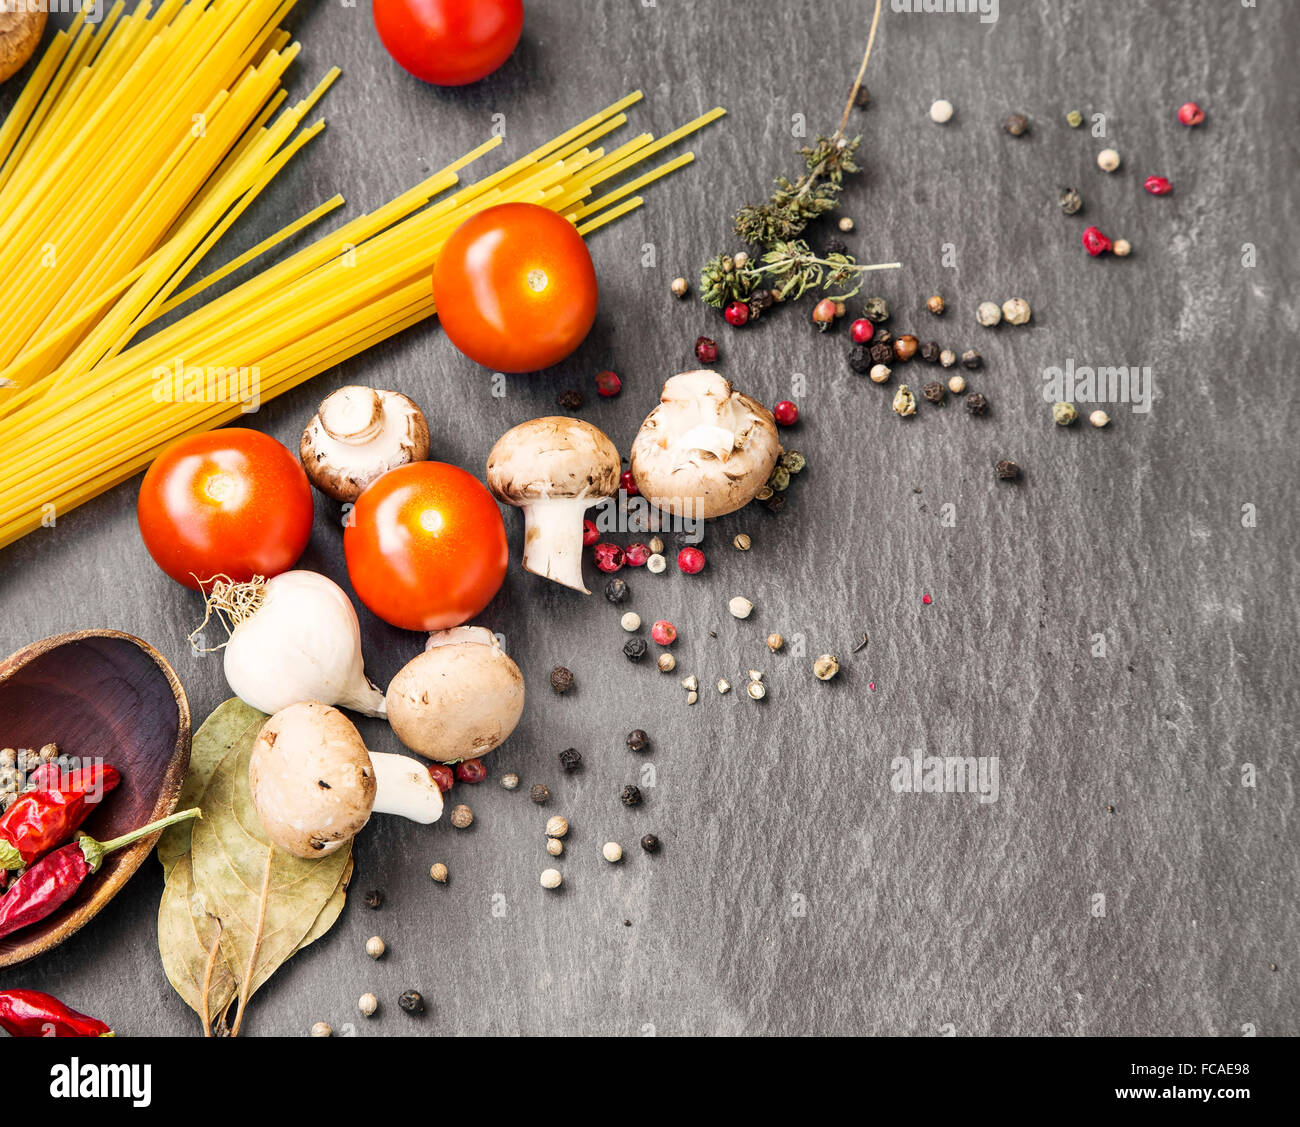 Italian meal ingredients with pasta,spices,tomatoes and mushrooms - Stock Image